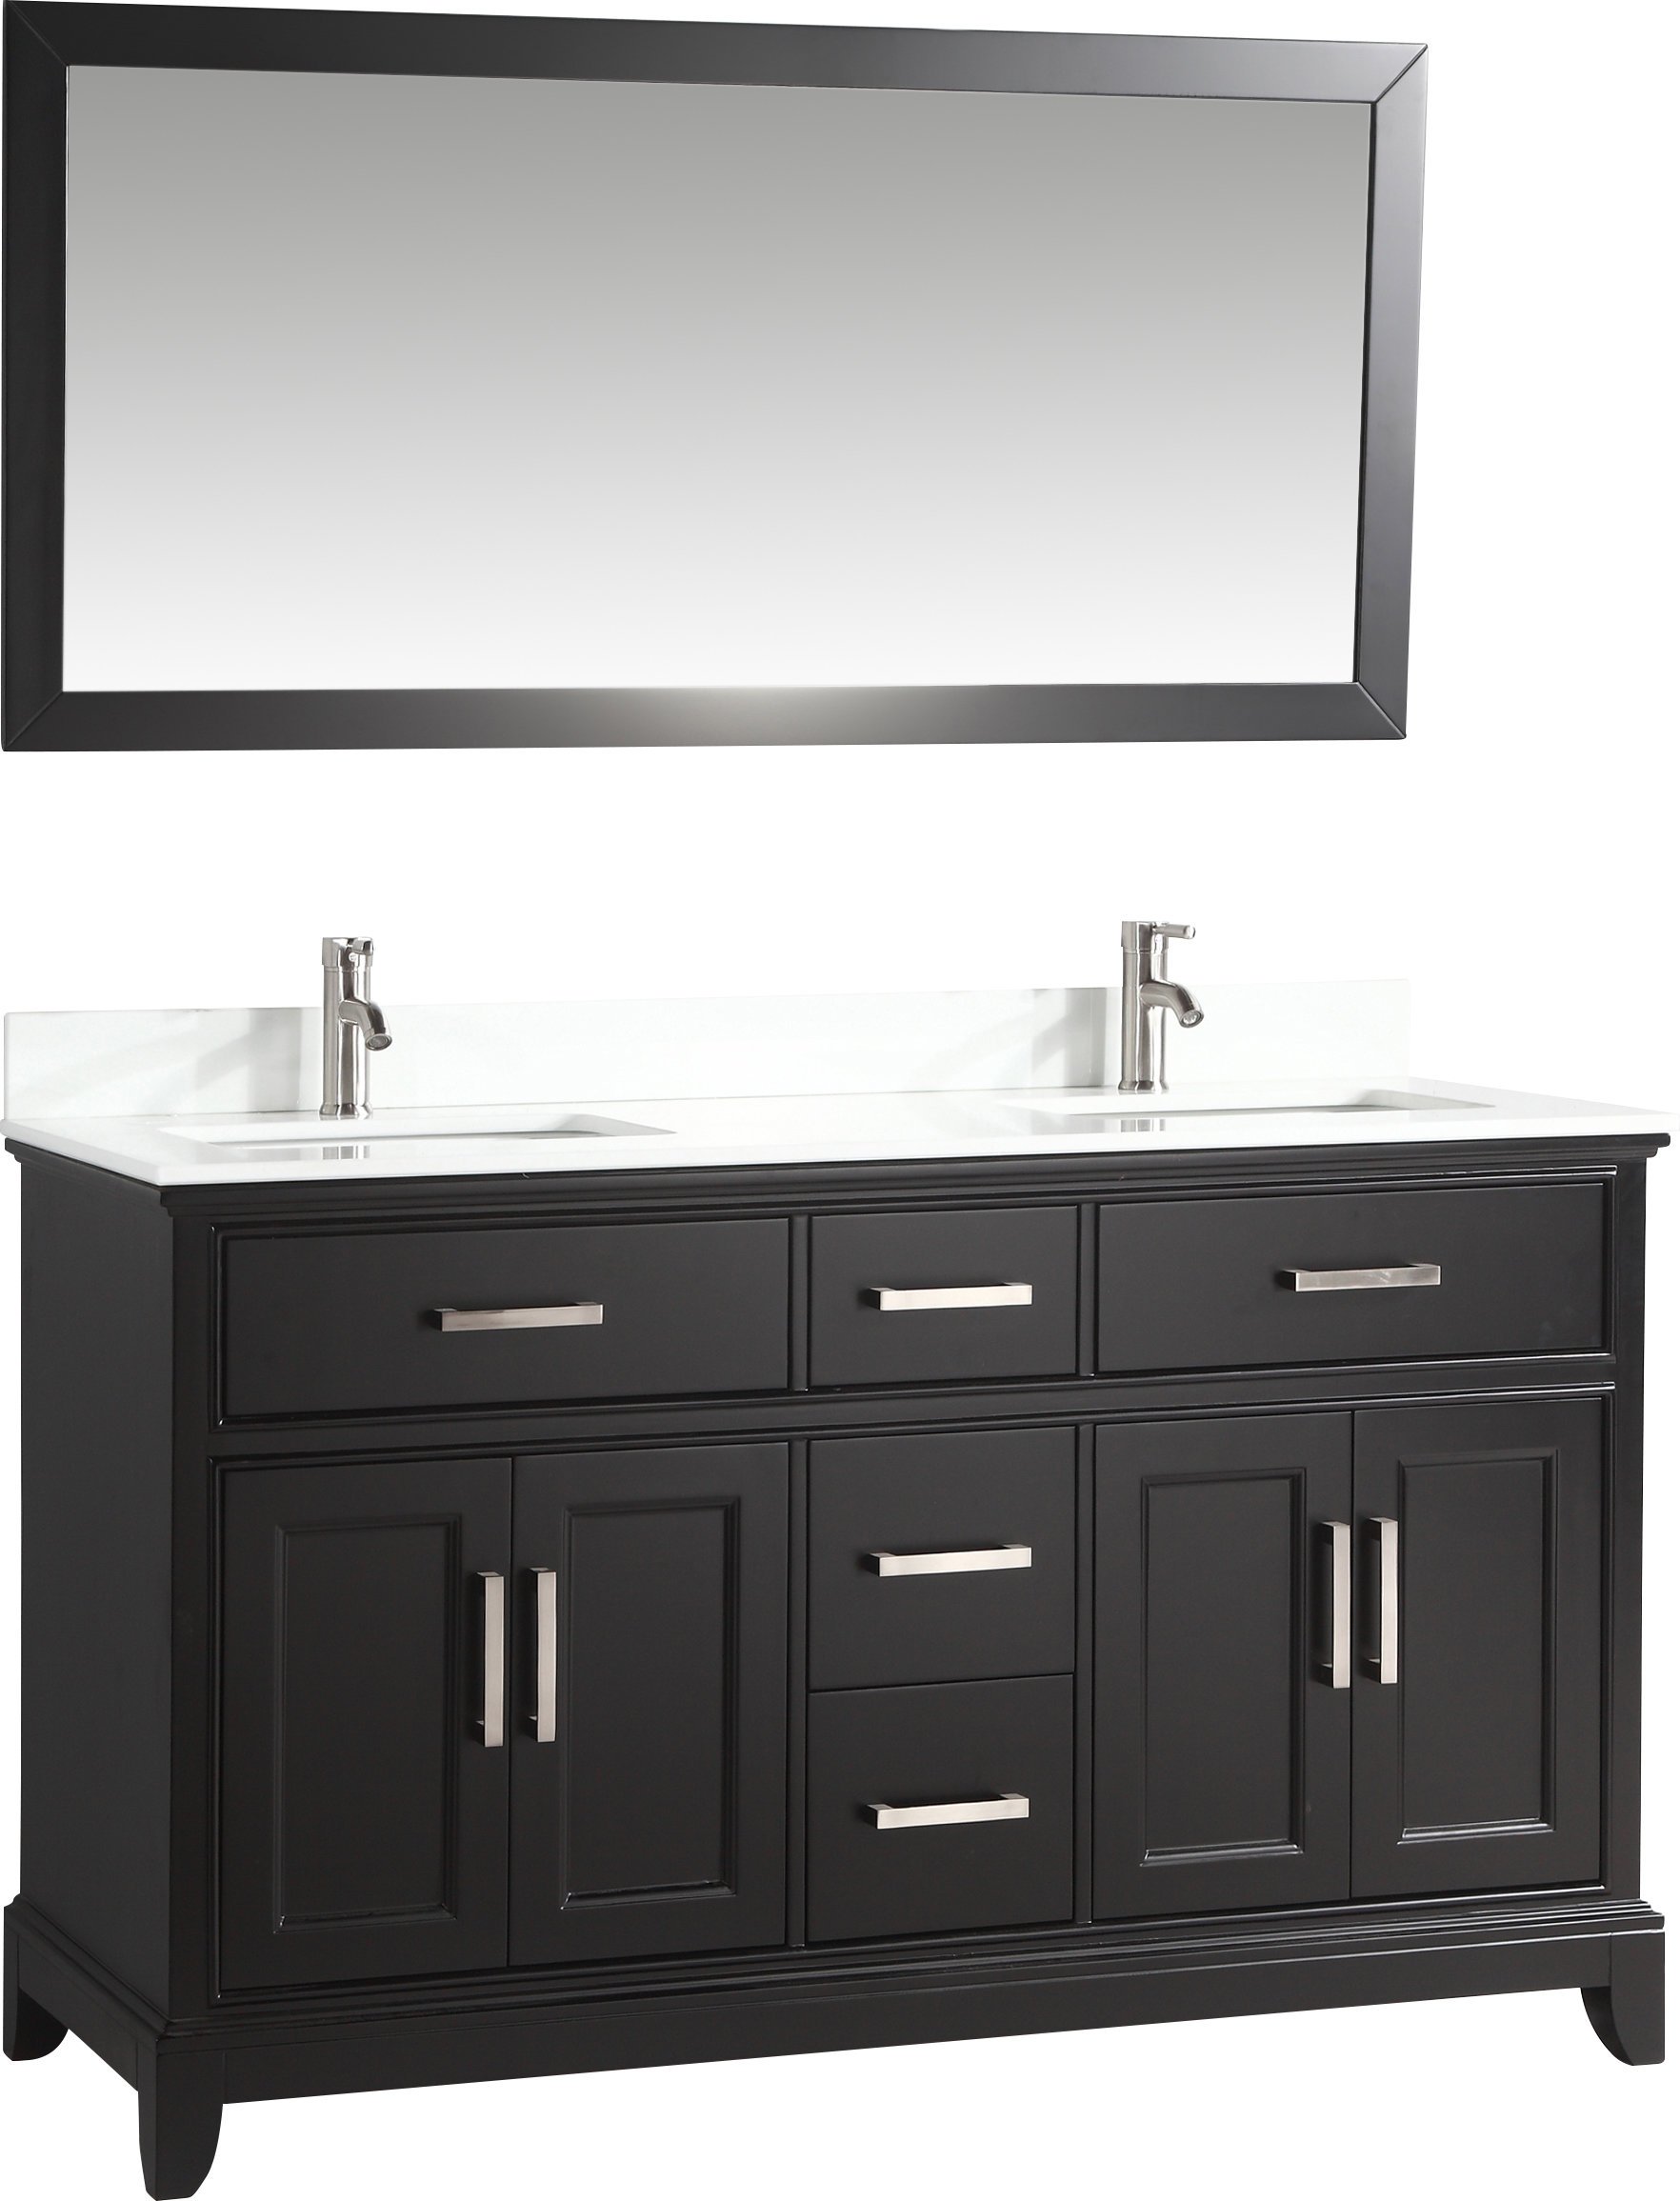 "Blevens 60"" Double Bathroom Vanity Set With Mirror Inside Landover Rustic Distressed Bathroom/vanity Mirrors (View 5 of 30)"